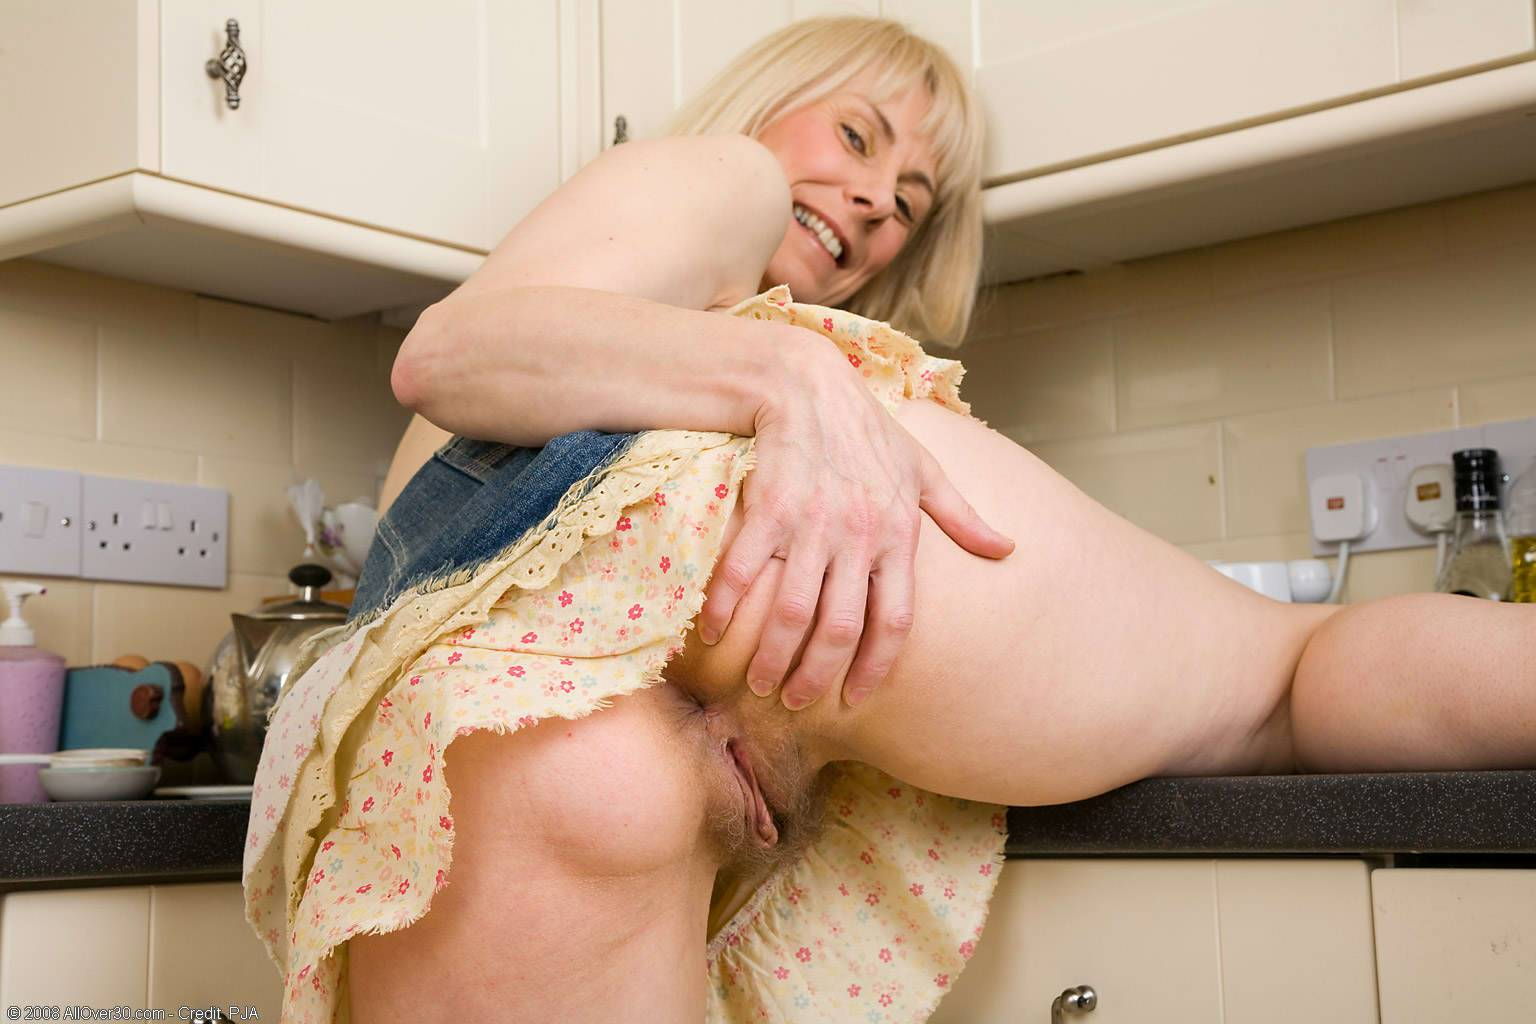 hazel may - sexy granny 1 - motherless